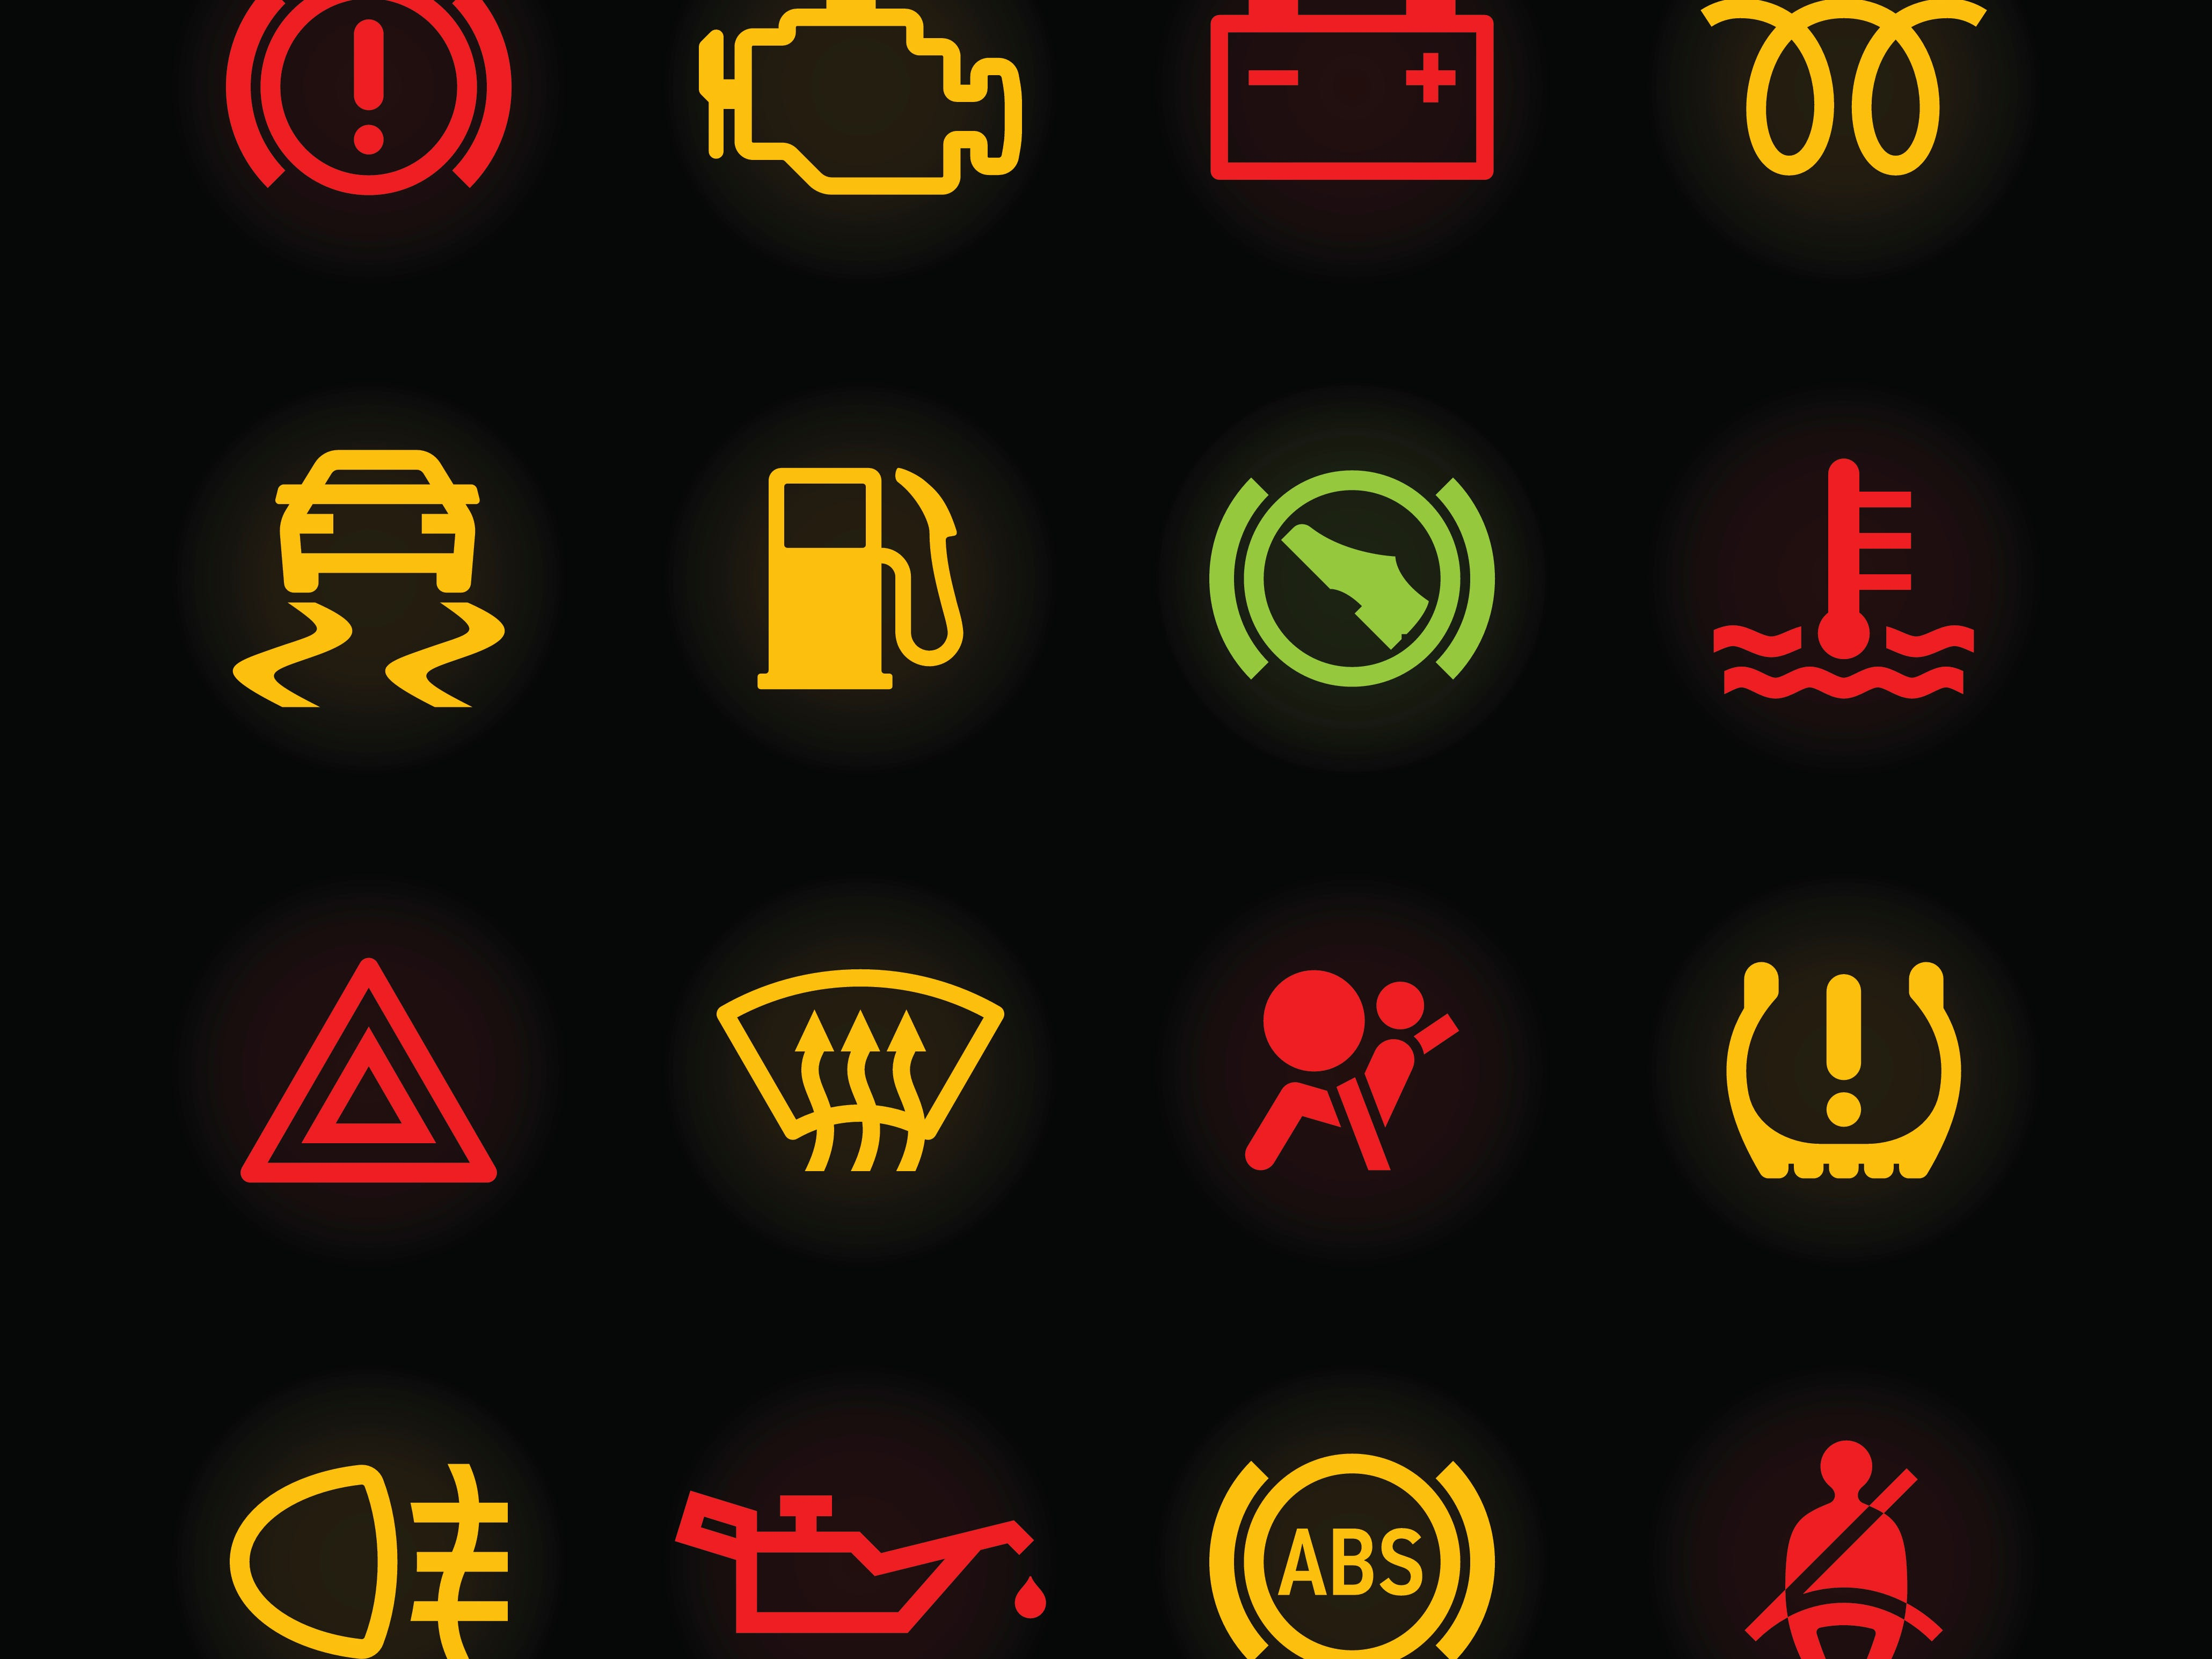 Do you know what these 10 car dashboard symbols mean?